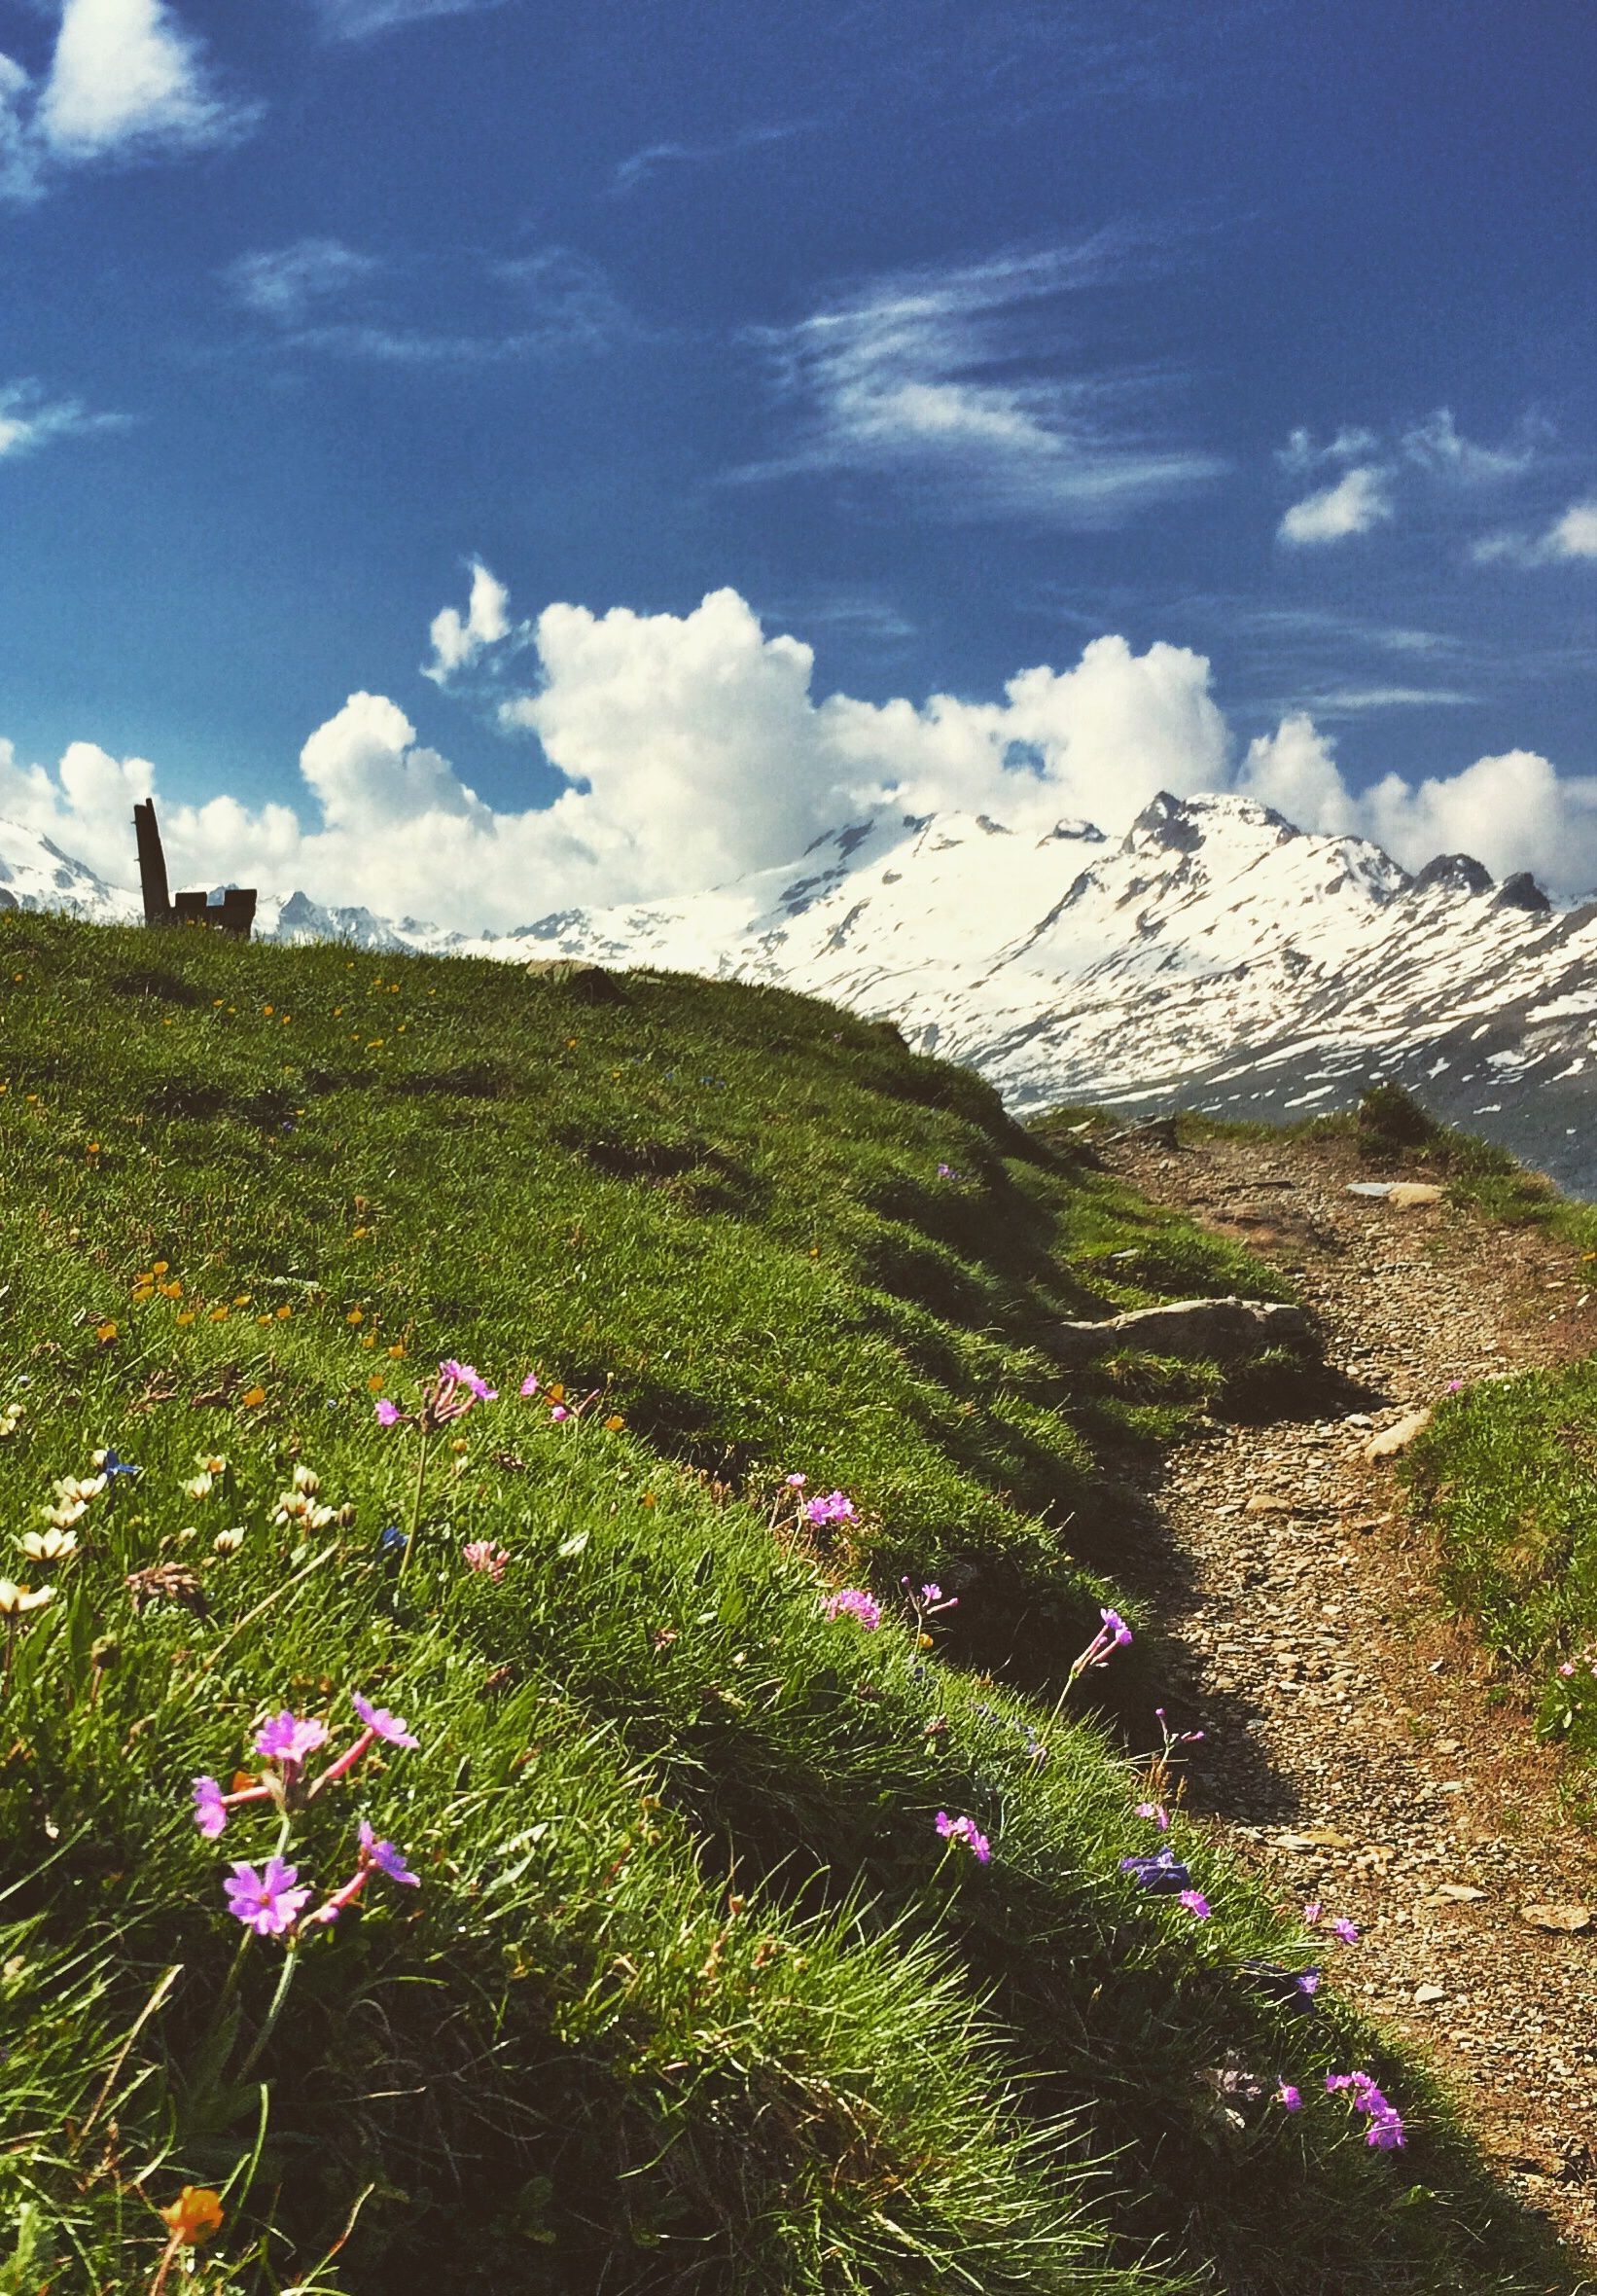 A perfect place to rest on a hike in the Idyllic Fextal in the Engadin Valley Switzerland  #mountains#hike#nature#sun